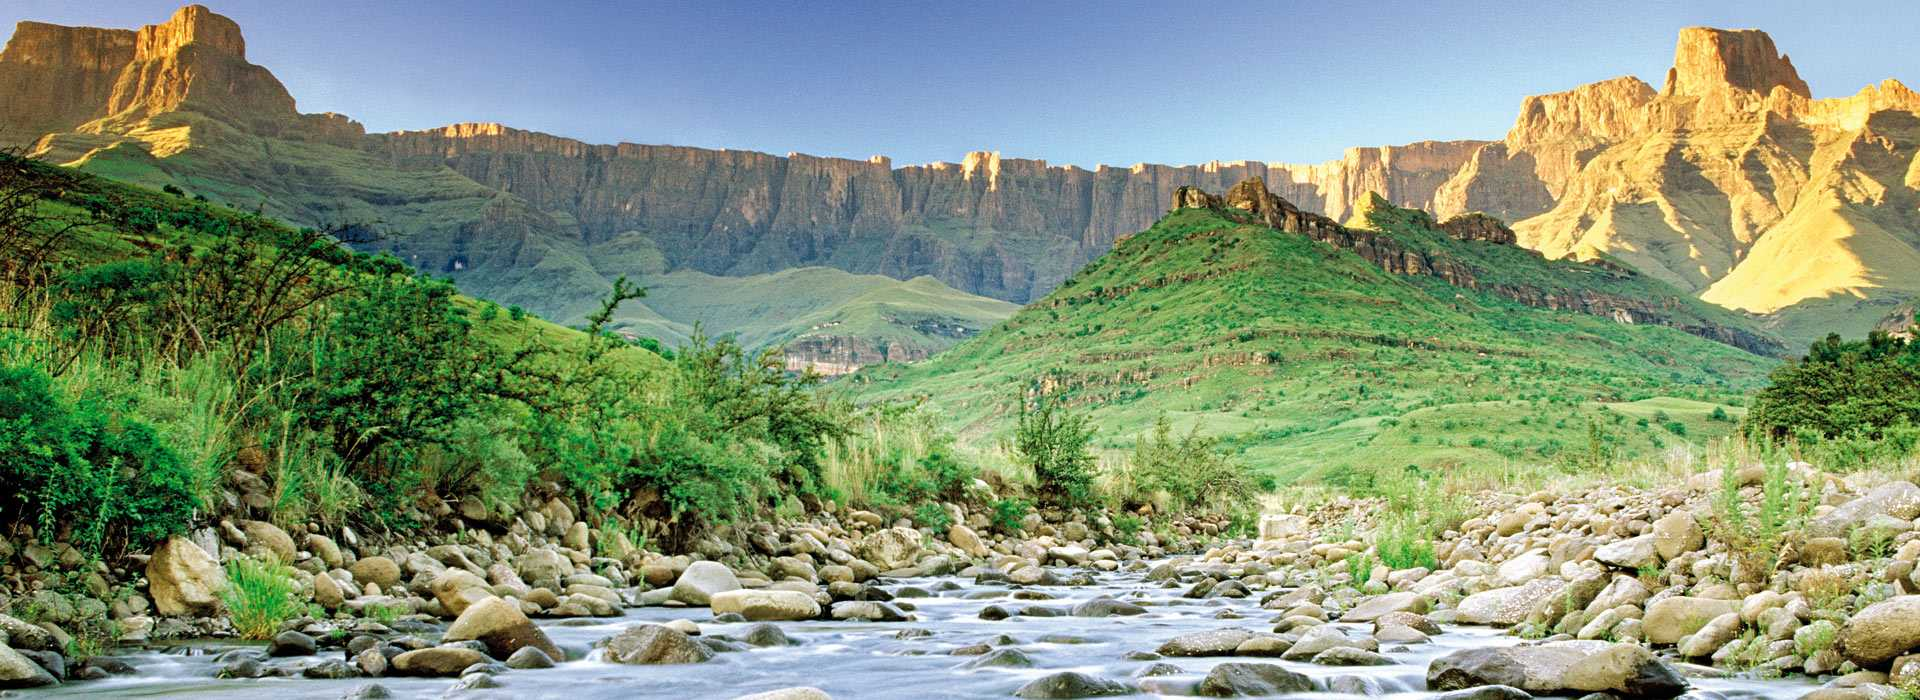 Amphitheatre And Tugela River